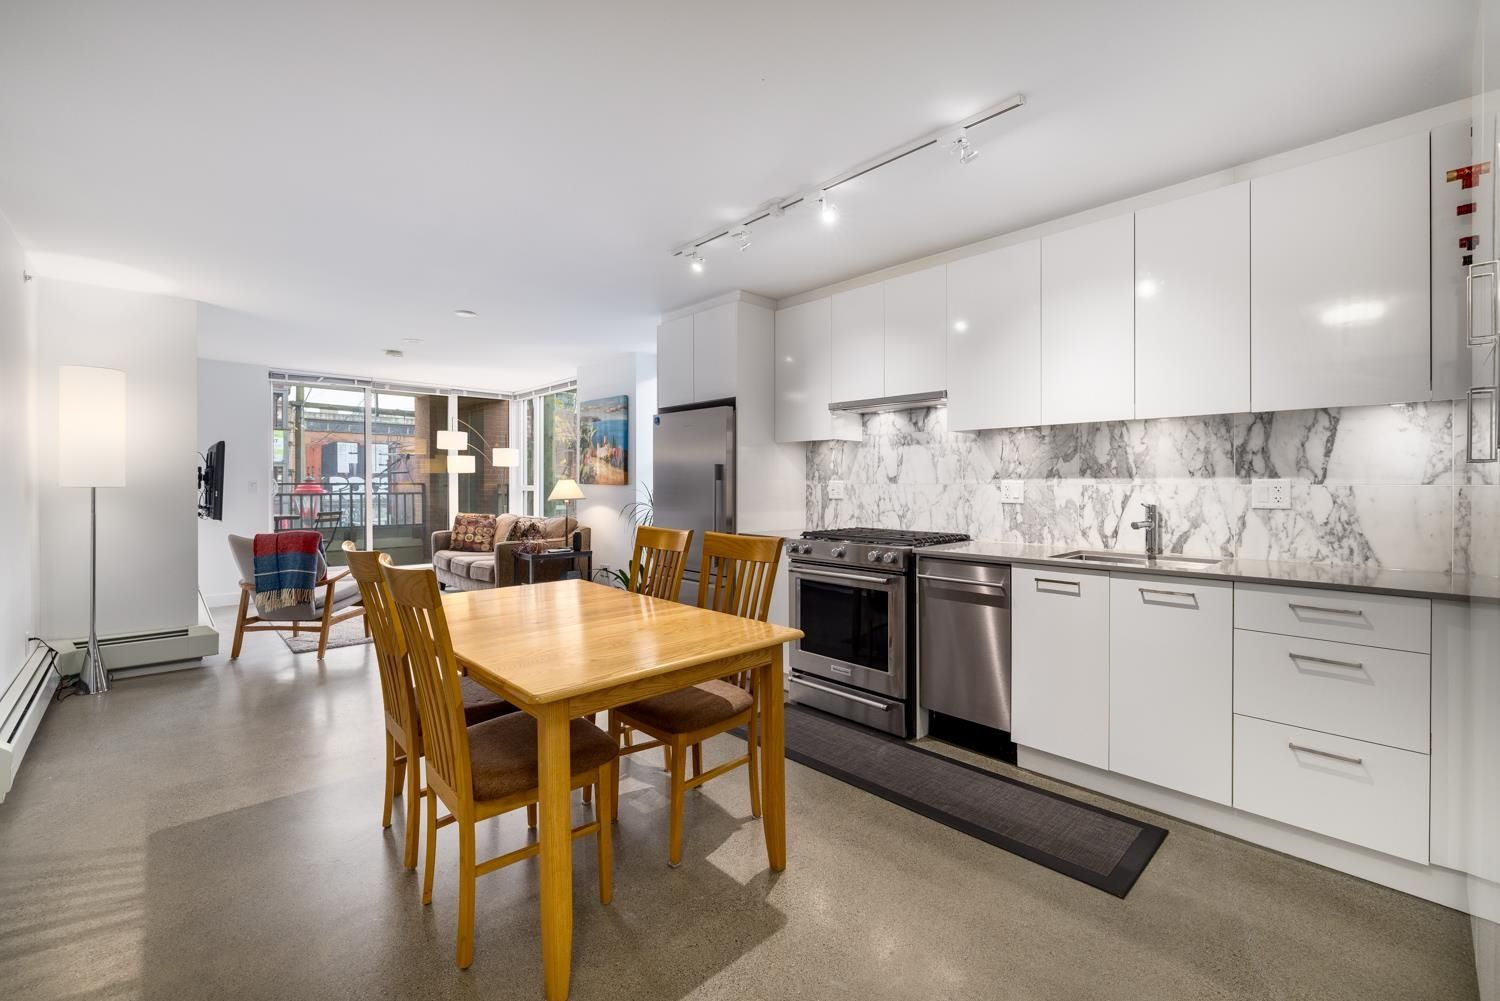 """Main Photo: 207 231 E PENDER Street in Vancouver: Downtown VE Condo for sale in """"Frameworks"""" (Vancouver East)  : MLS®# R2625636"""